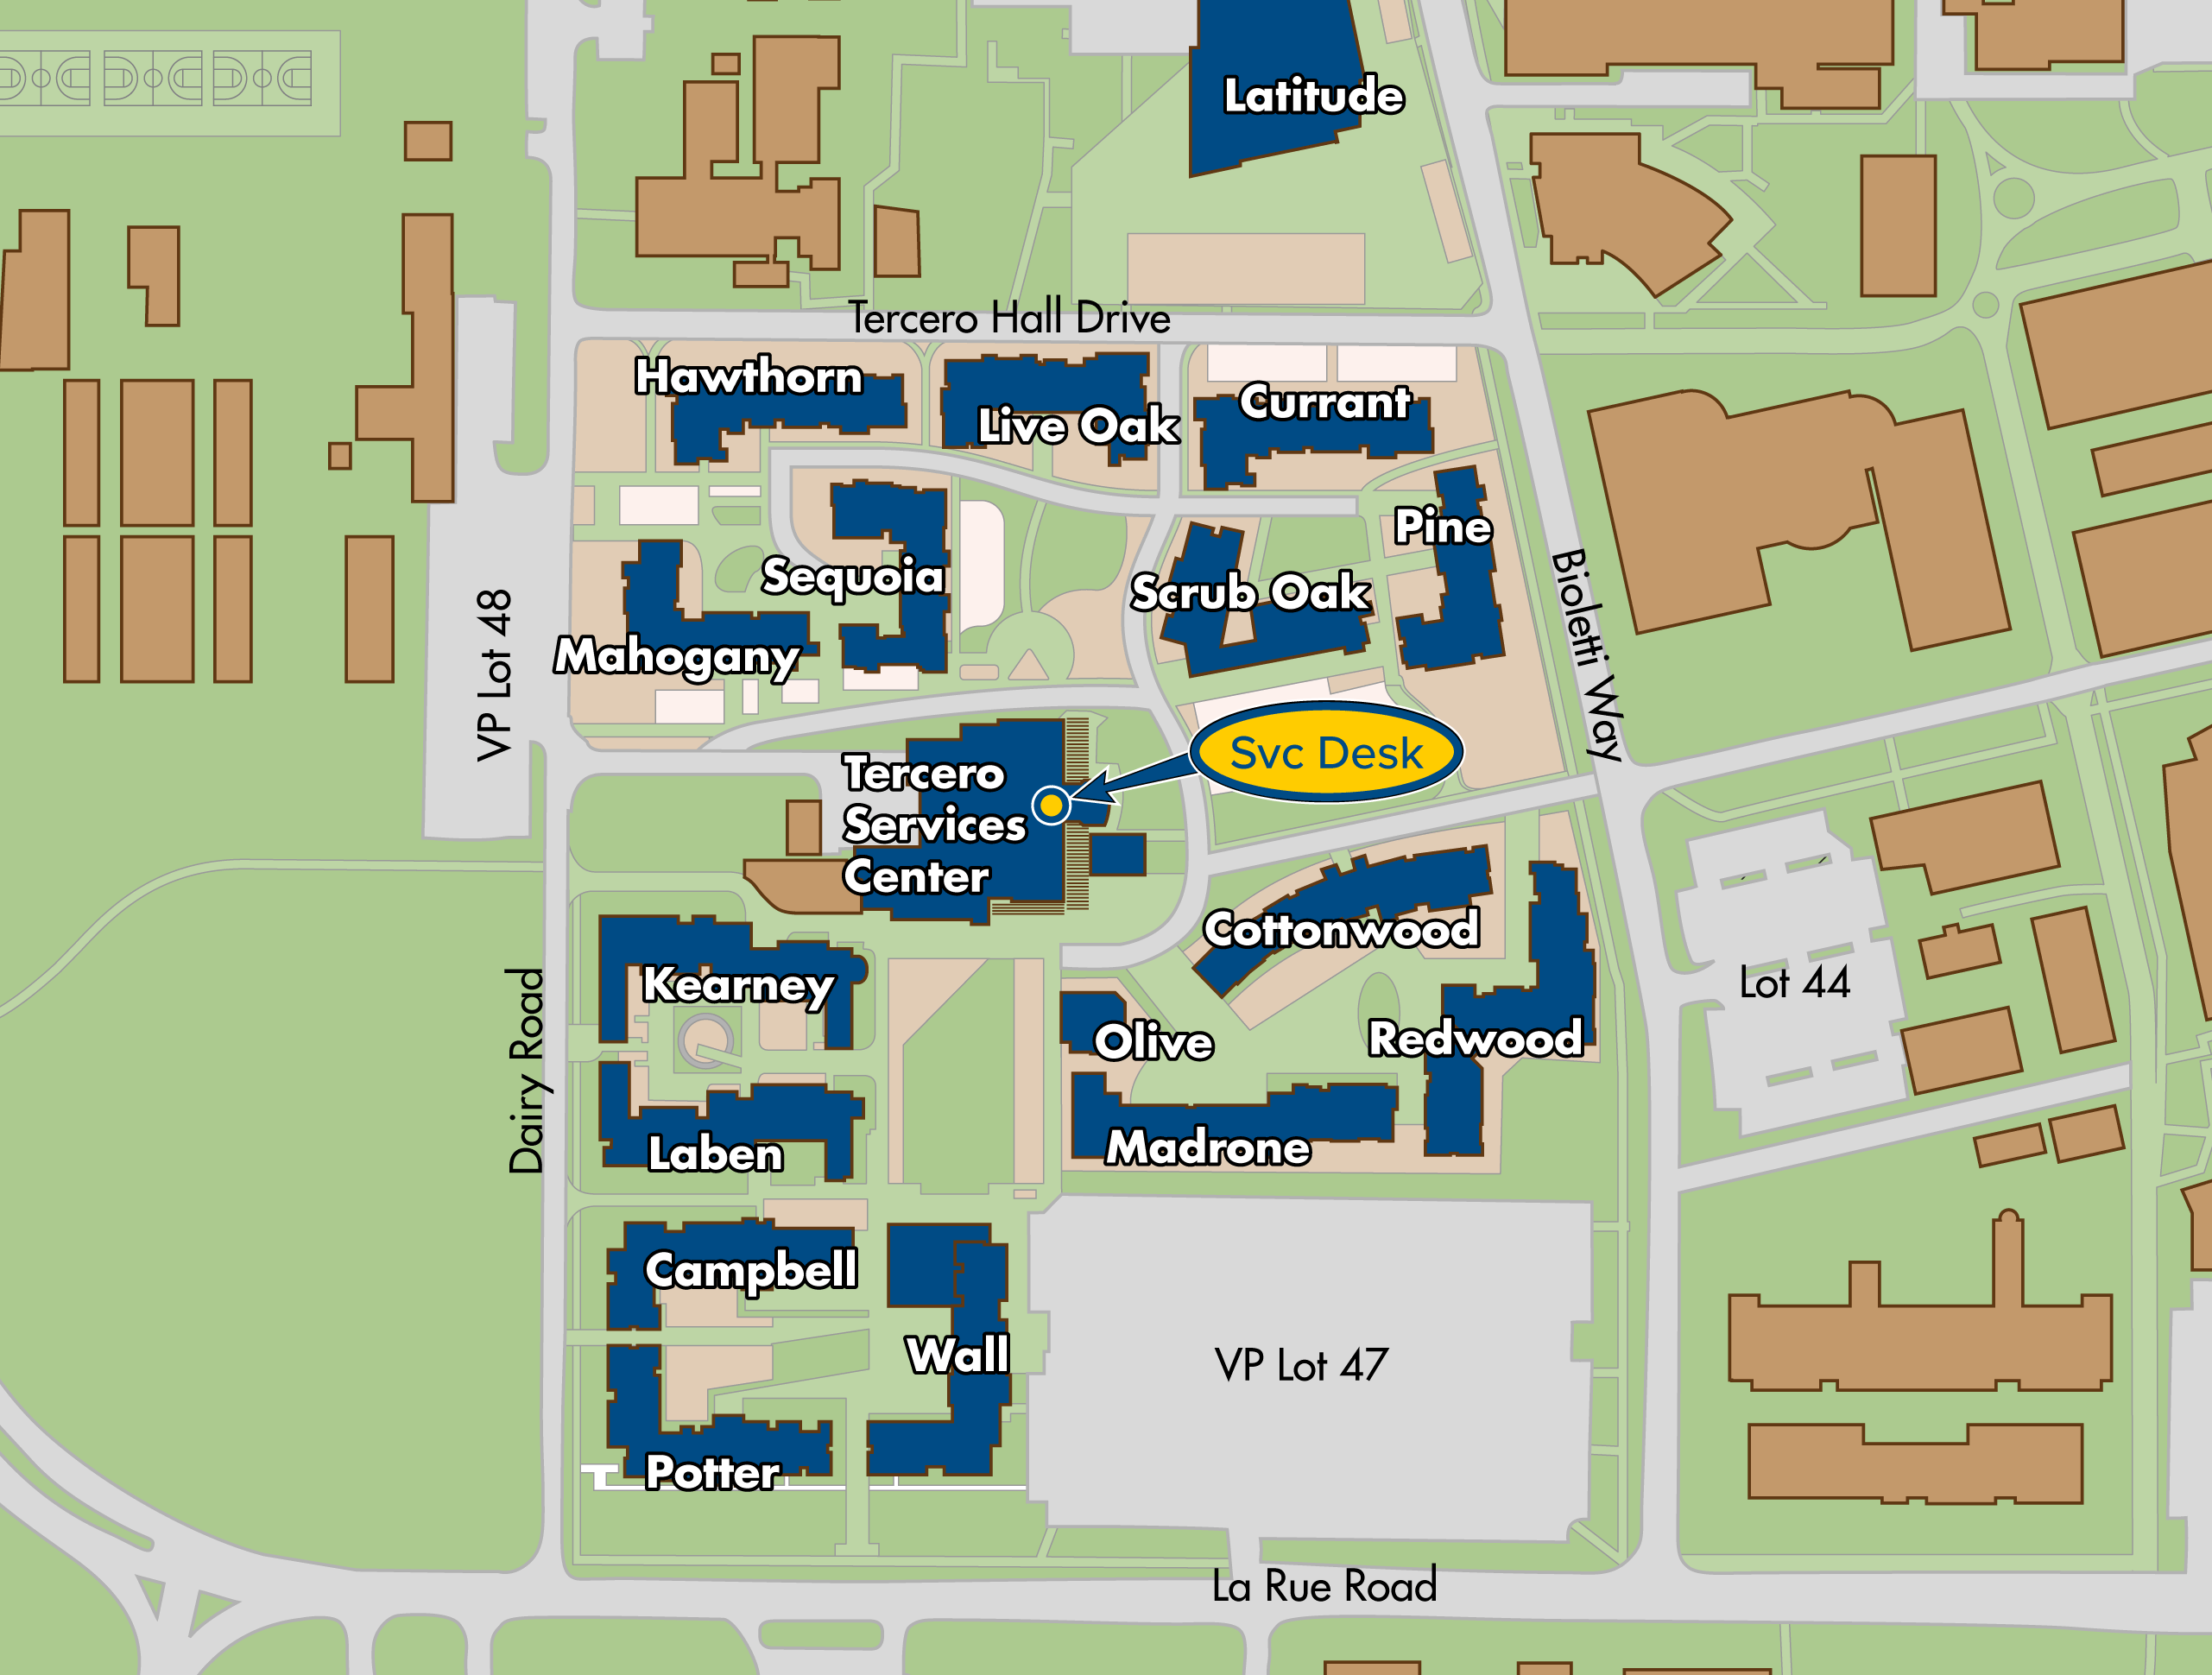 Map of Tercero area residence halls locations on the UC Davis campus